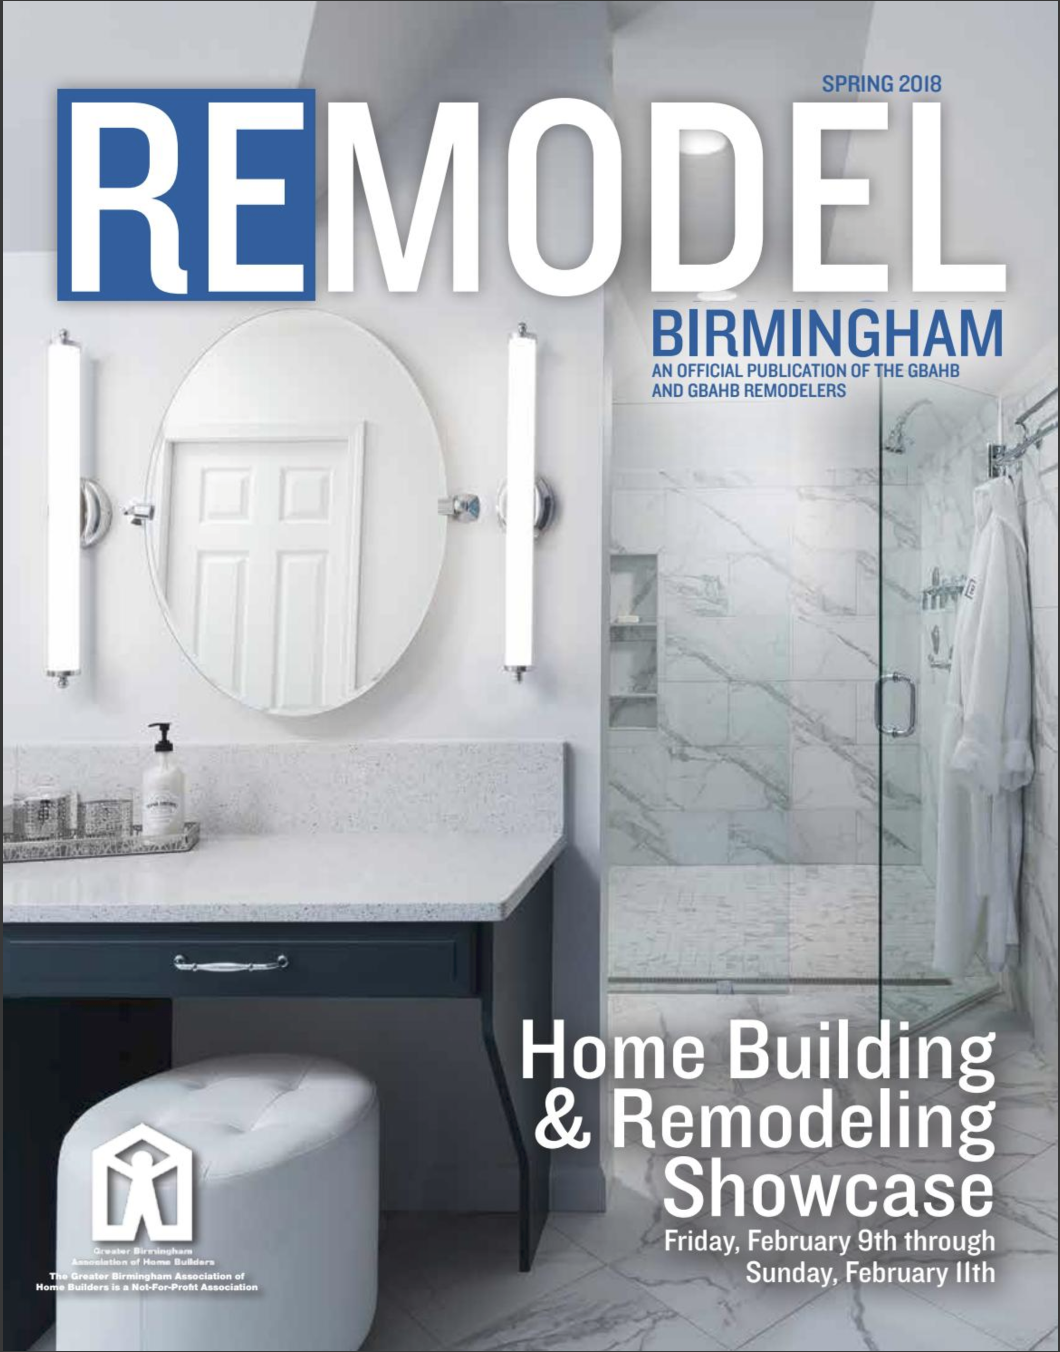 Cover of Remodel Magazine Spring 2018. Photographed for Precision Homecrafters in Birmingham Alabama